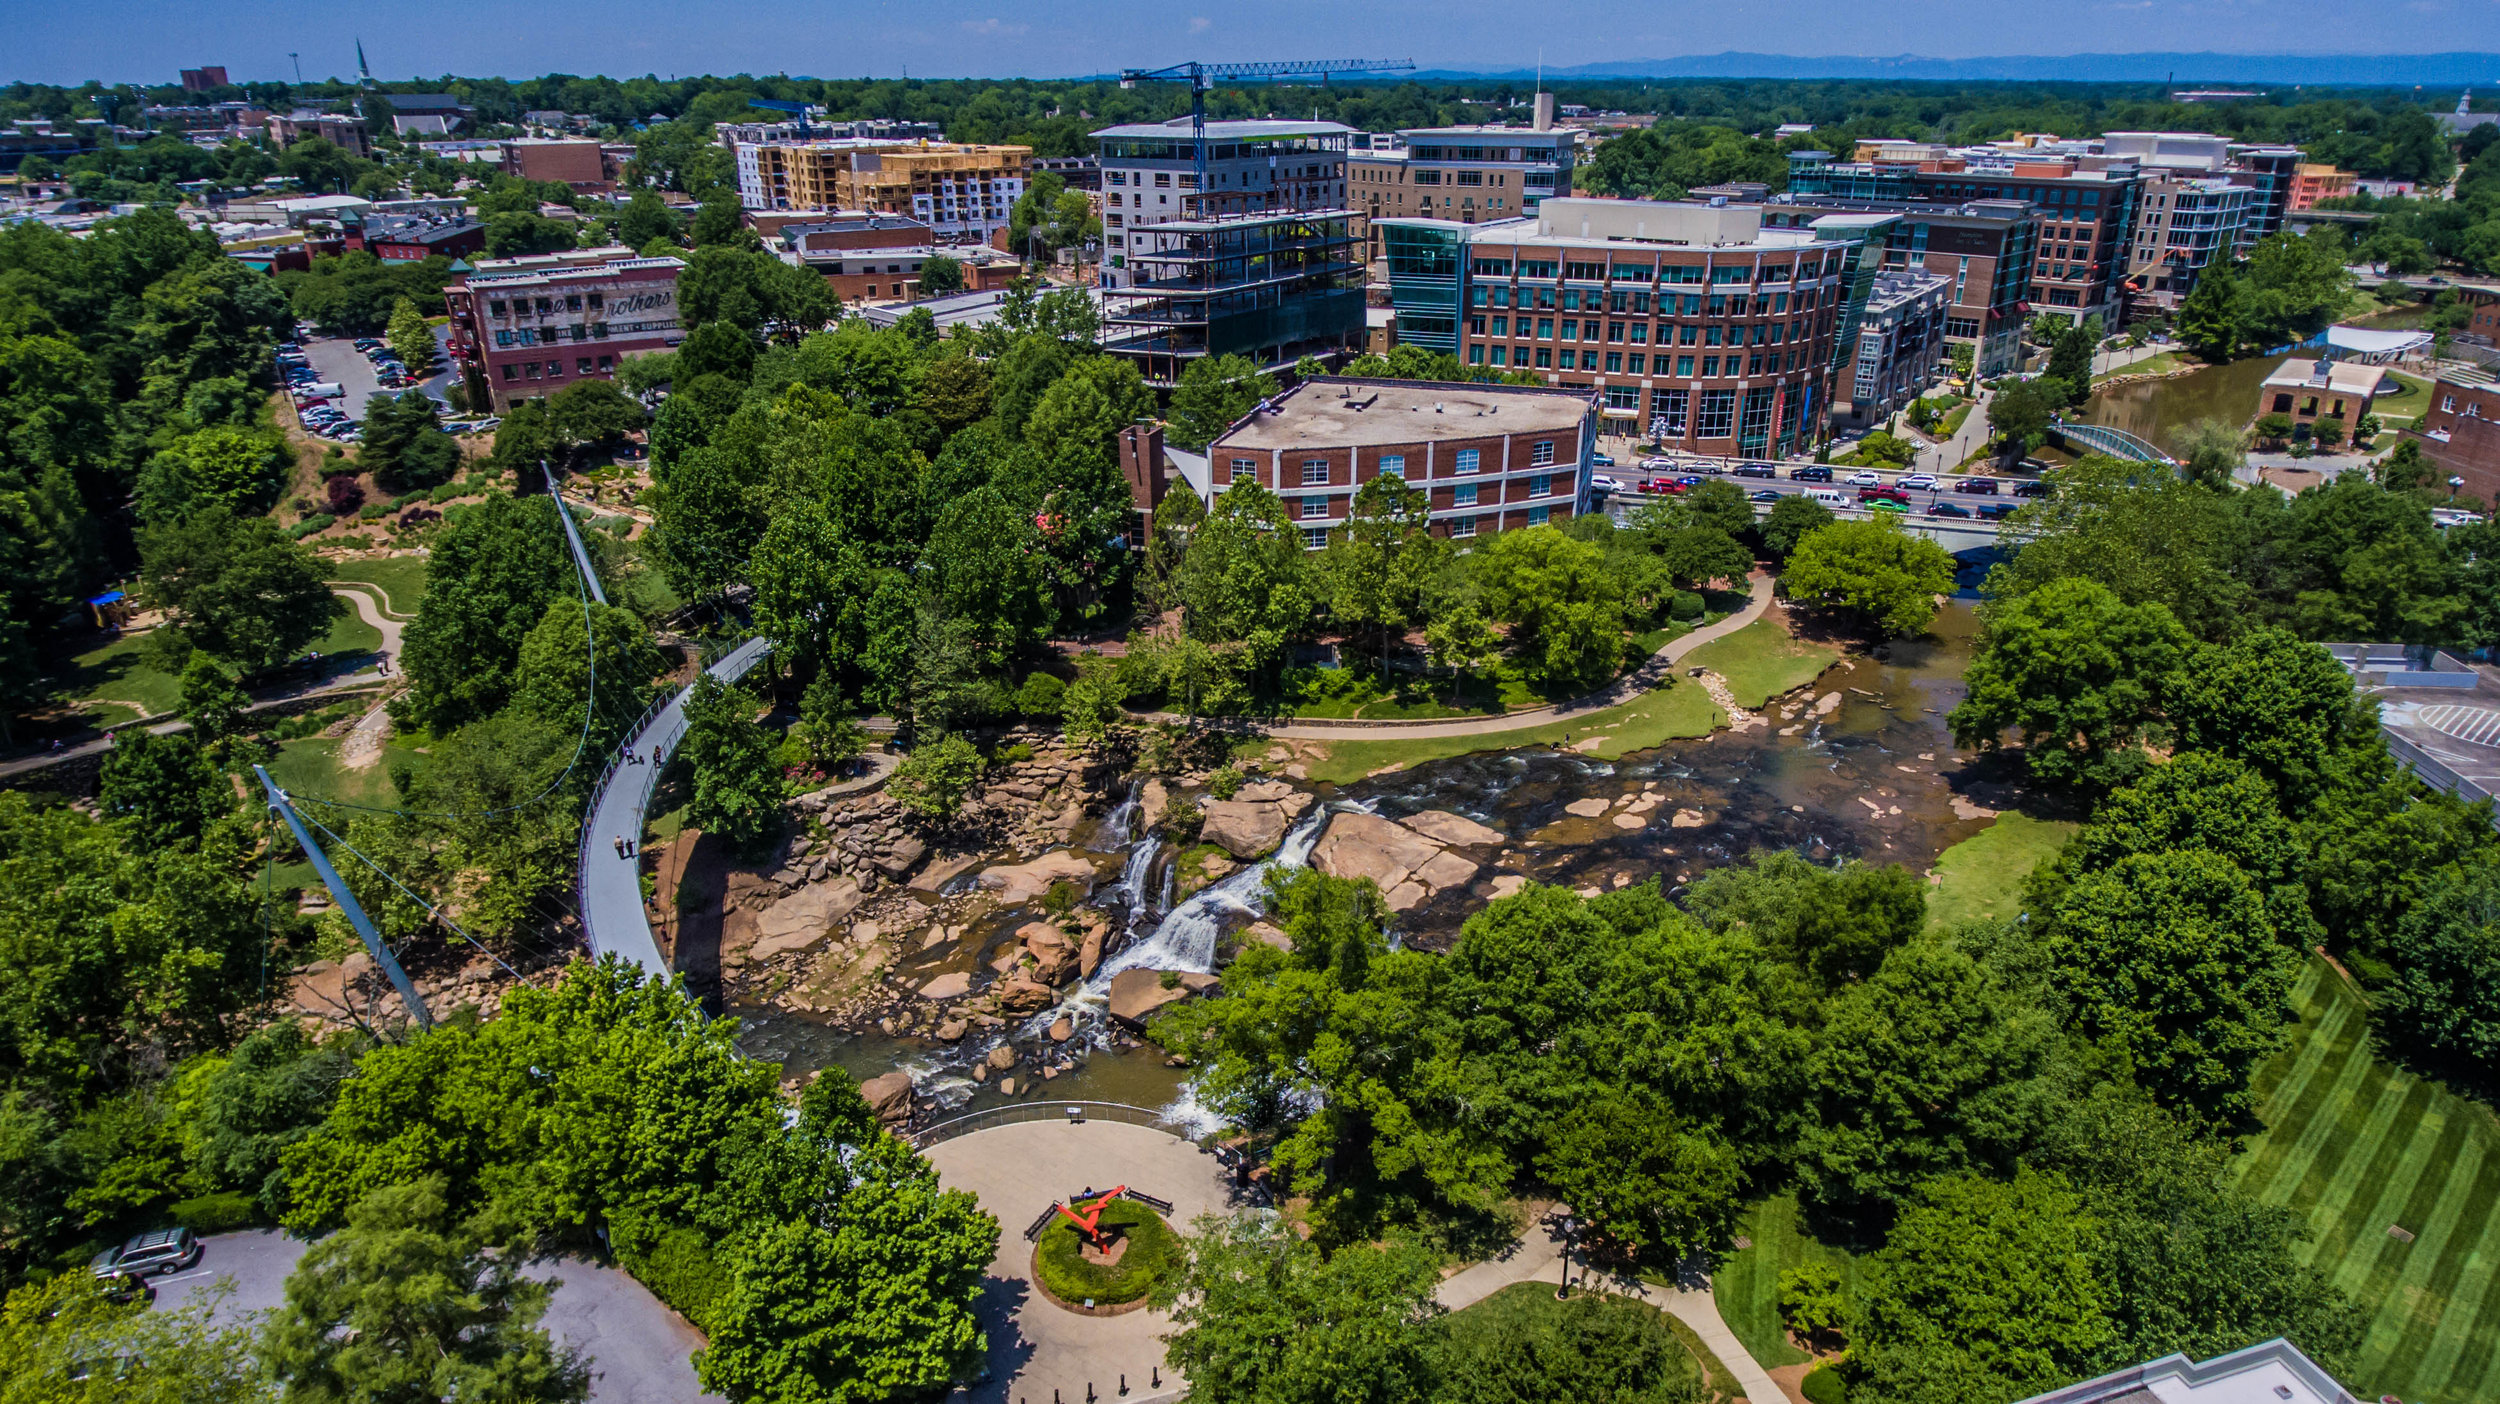 DJI_0029 Downtown Greenville Photo that Phil requested courtesy of Jame Prow Coldwell Banker Caine Marketing.jpg